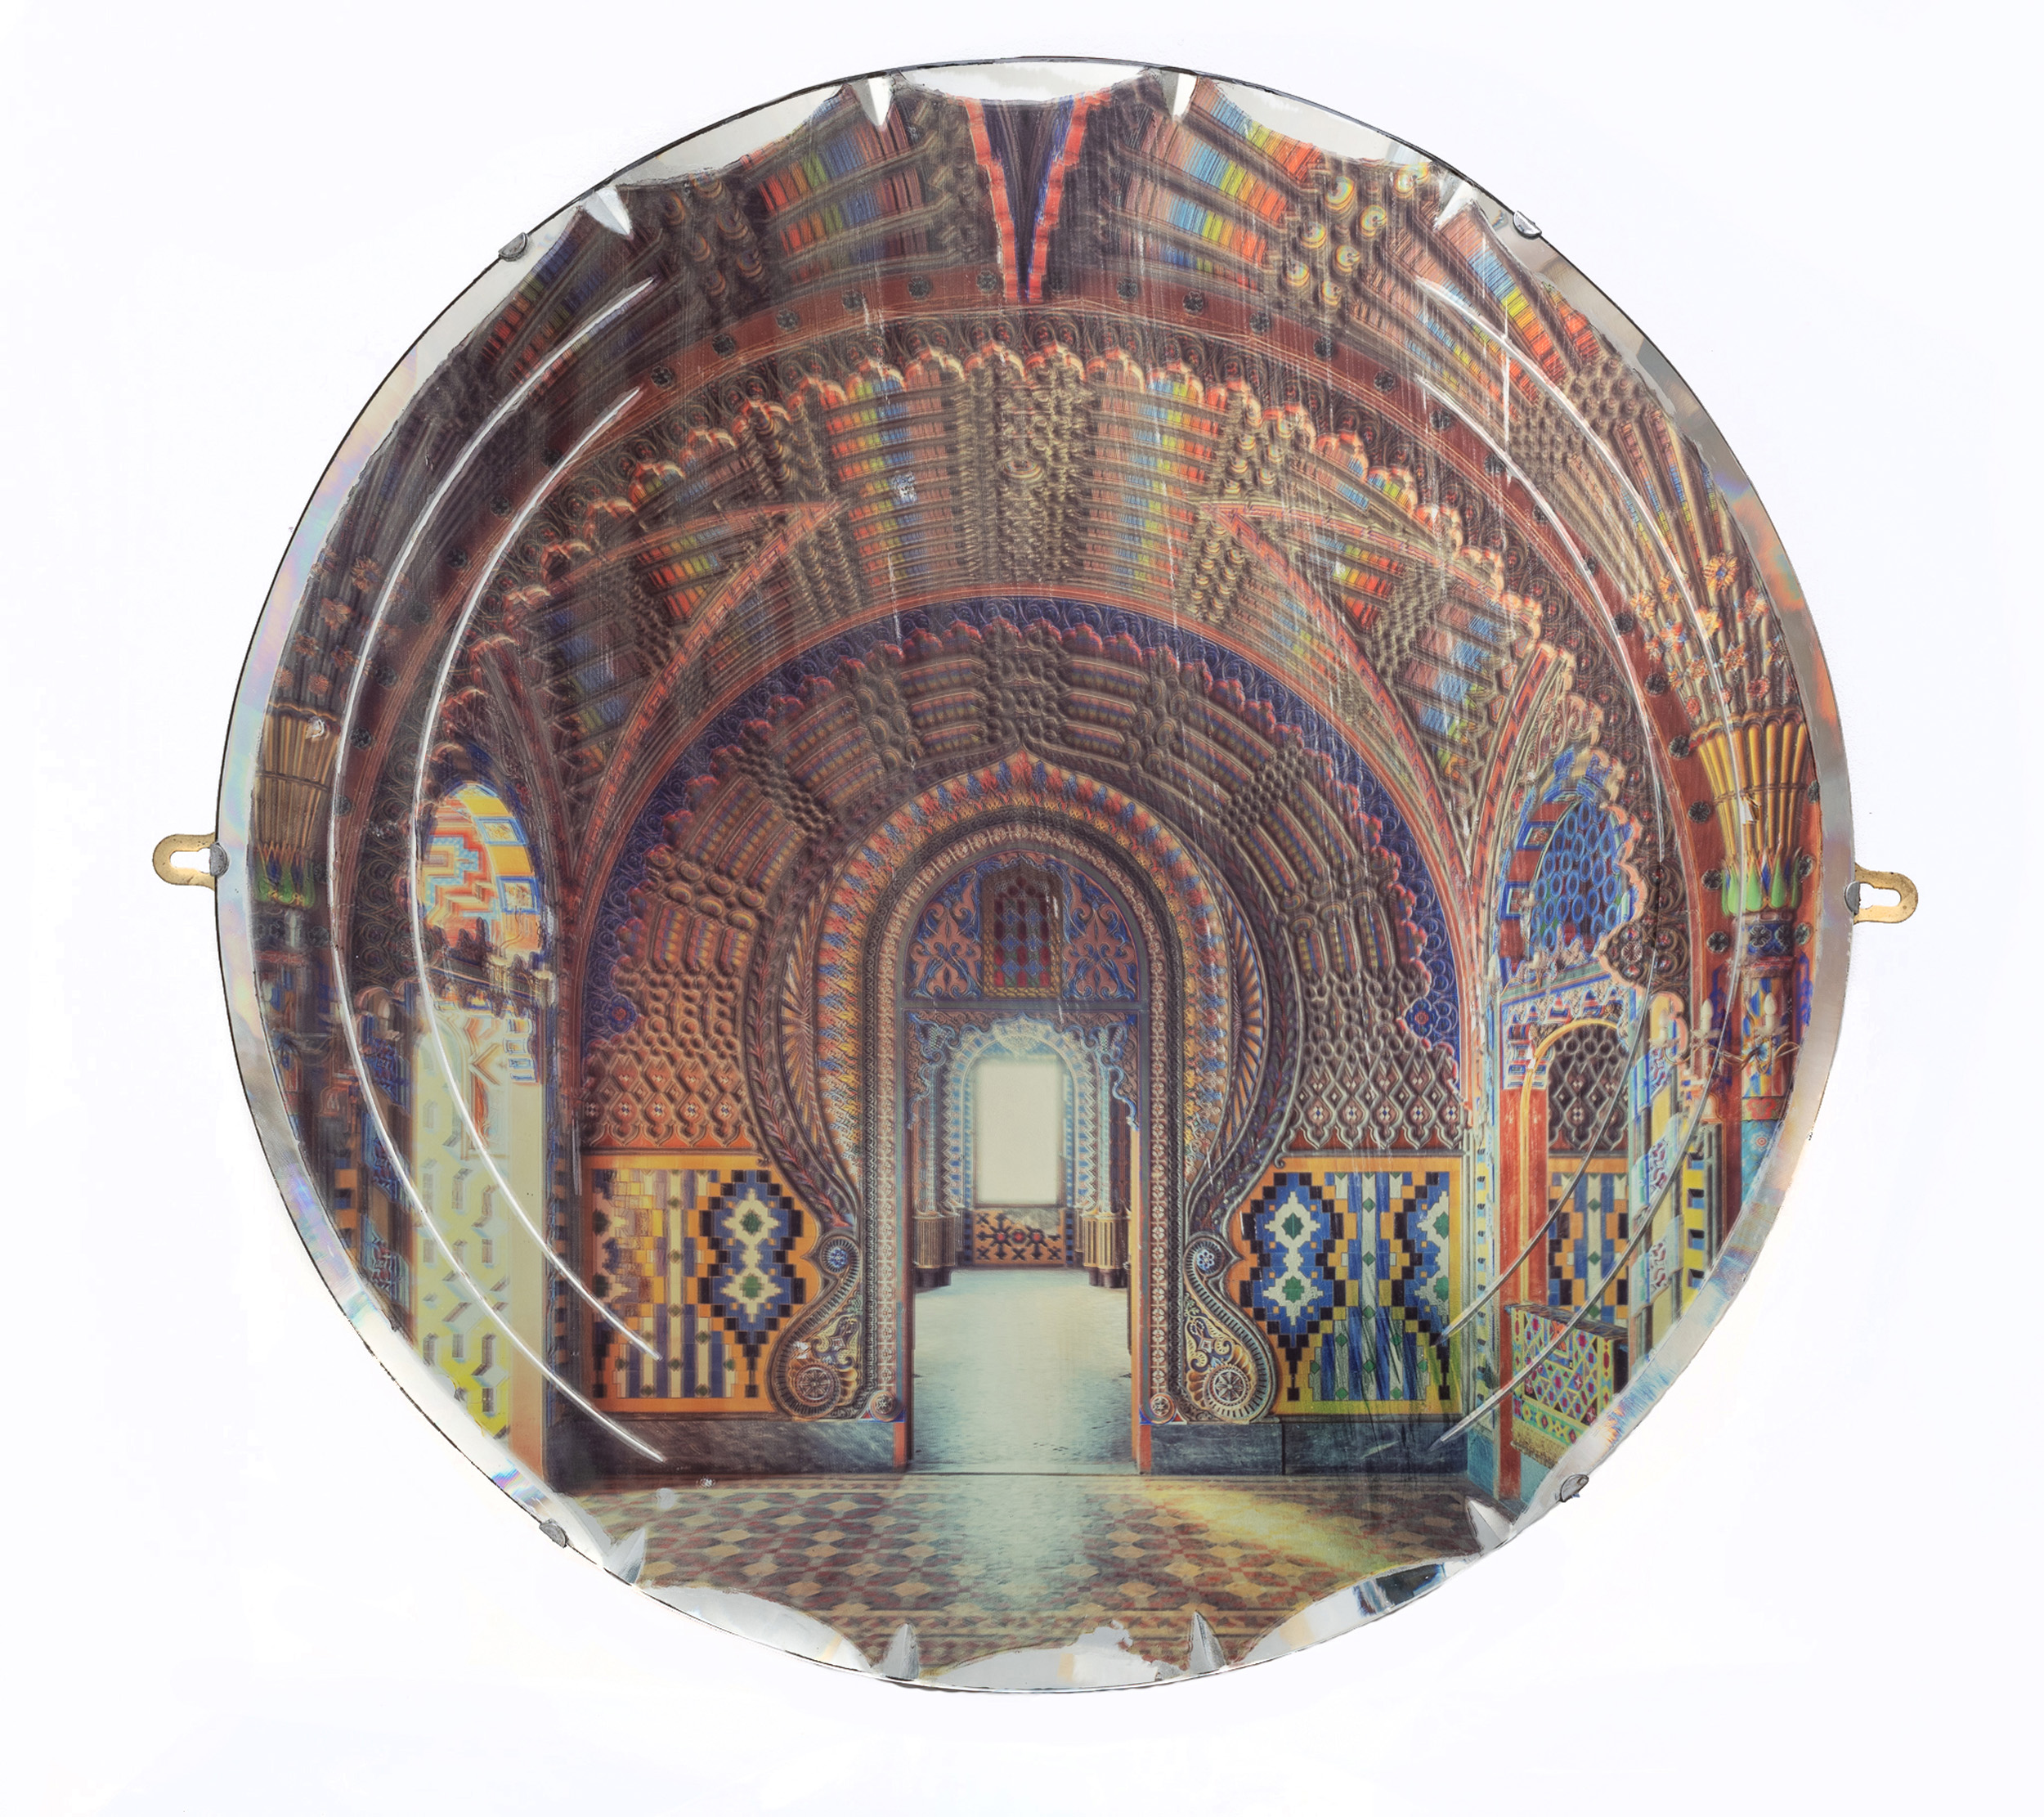 Peacock Castle on Mirror, 2019